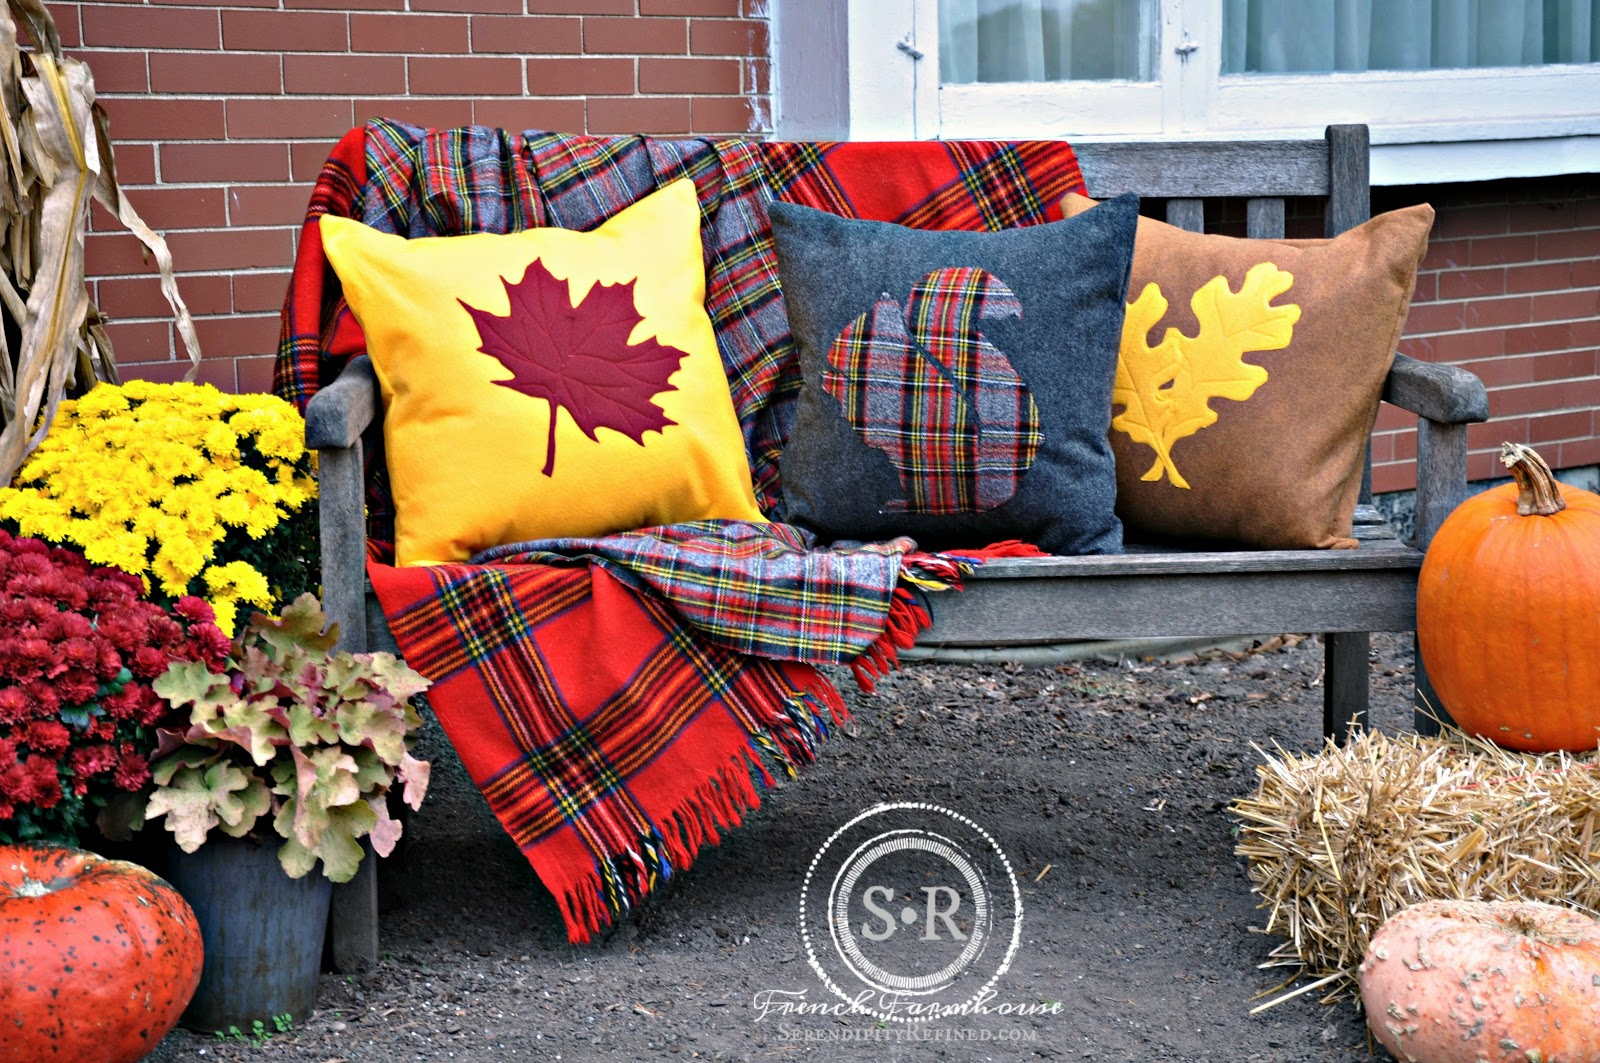 Astounding Serendipity Refined Blog Red Yellow And Gray Fall Porch Decor Unemploymentrelief Wooden Chair Designs For Living Room Unemploymentrelieforg